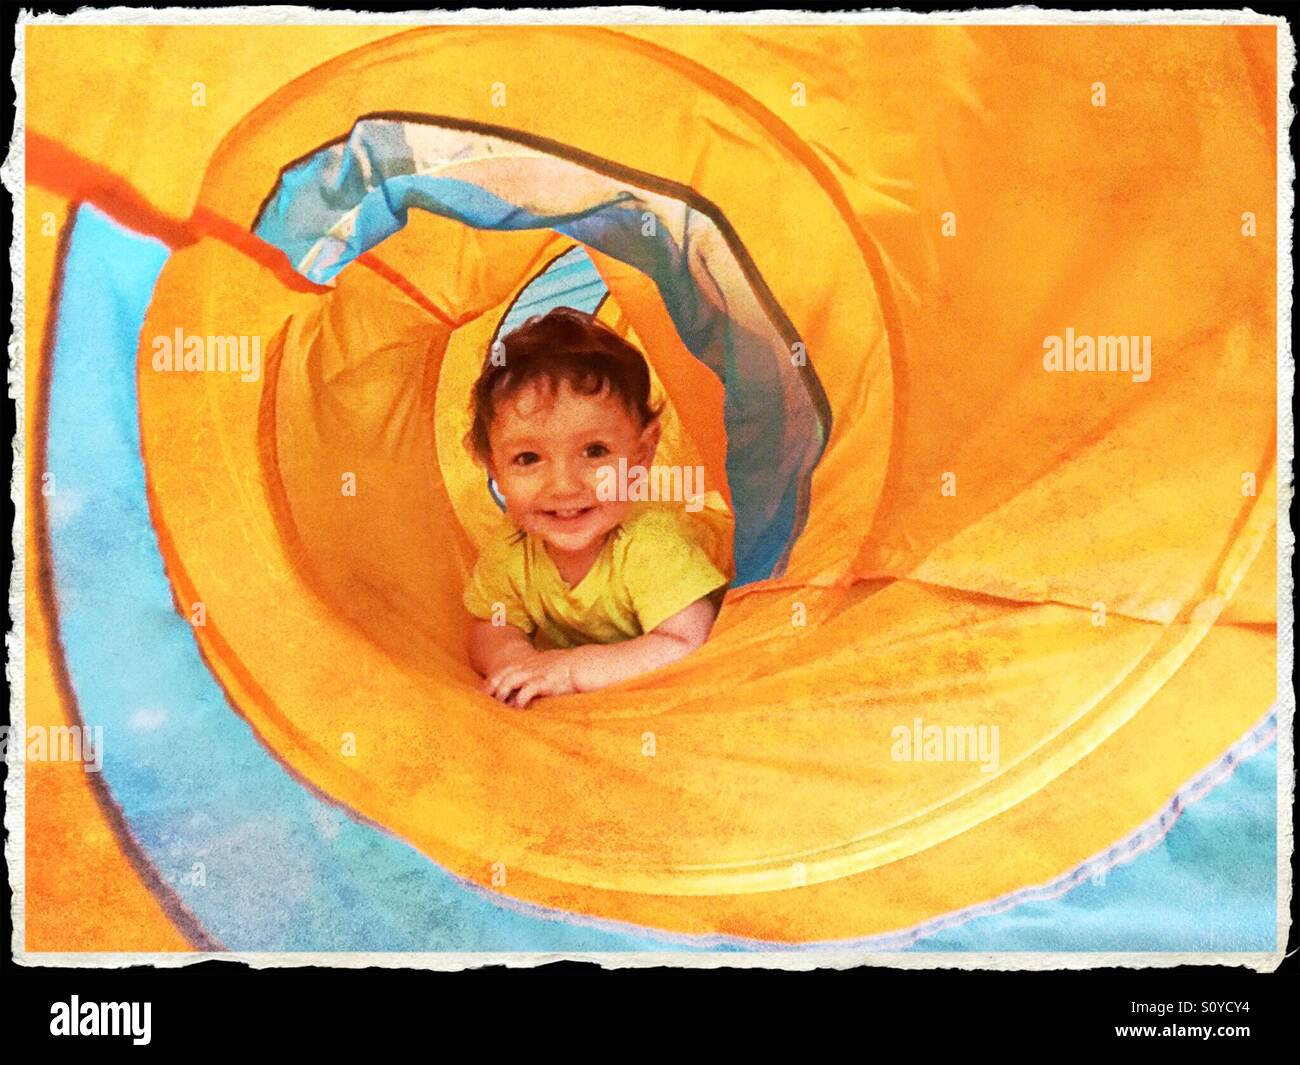 Cute happy child playing - Stock Image